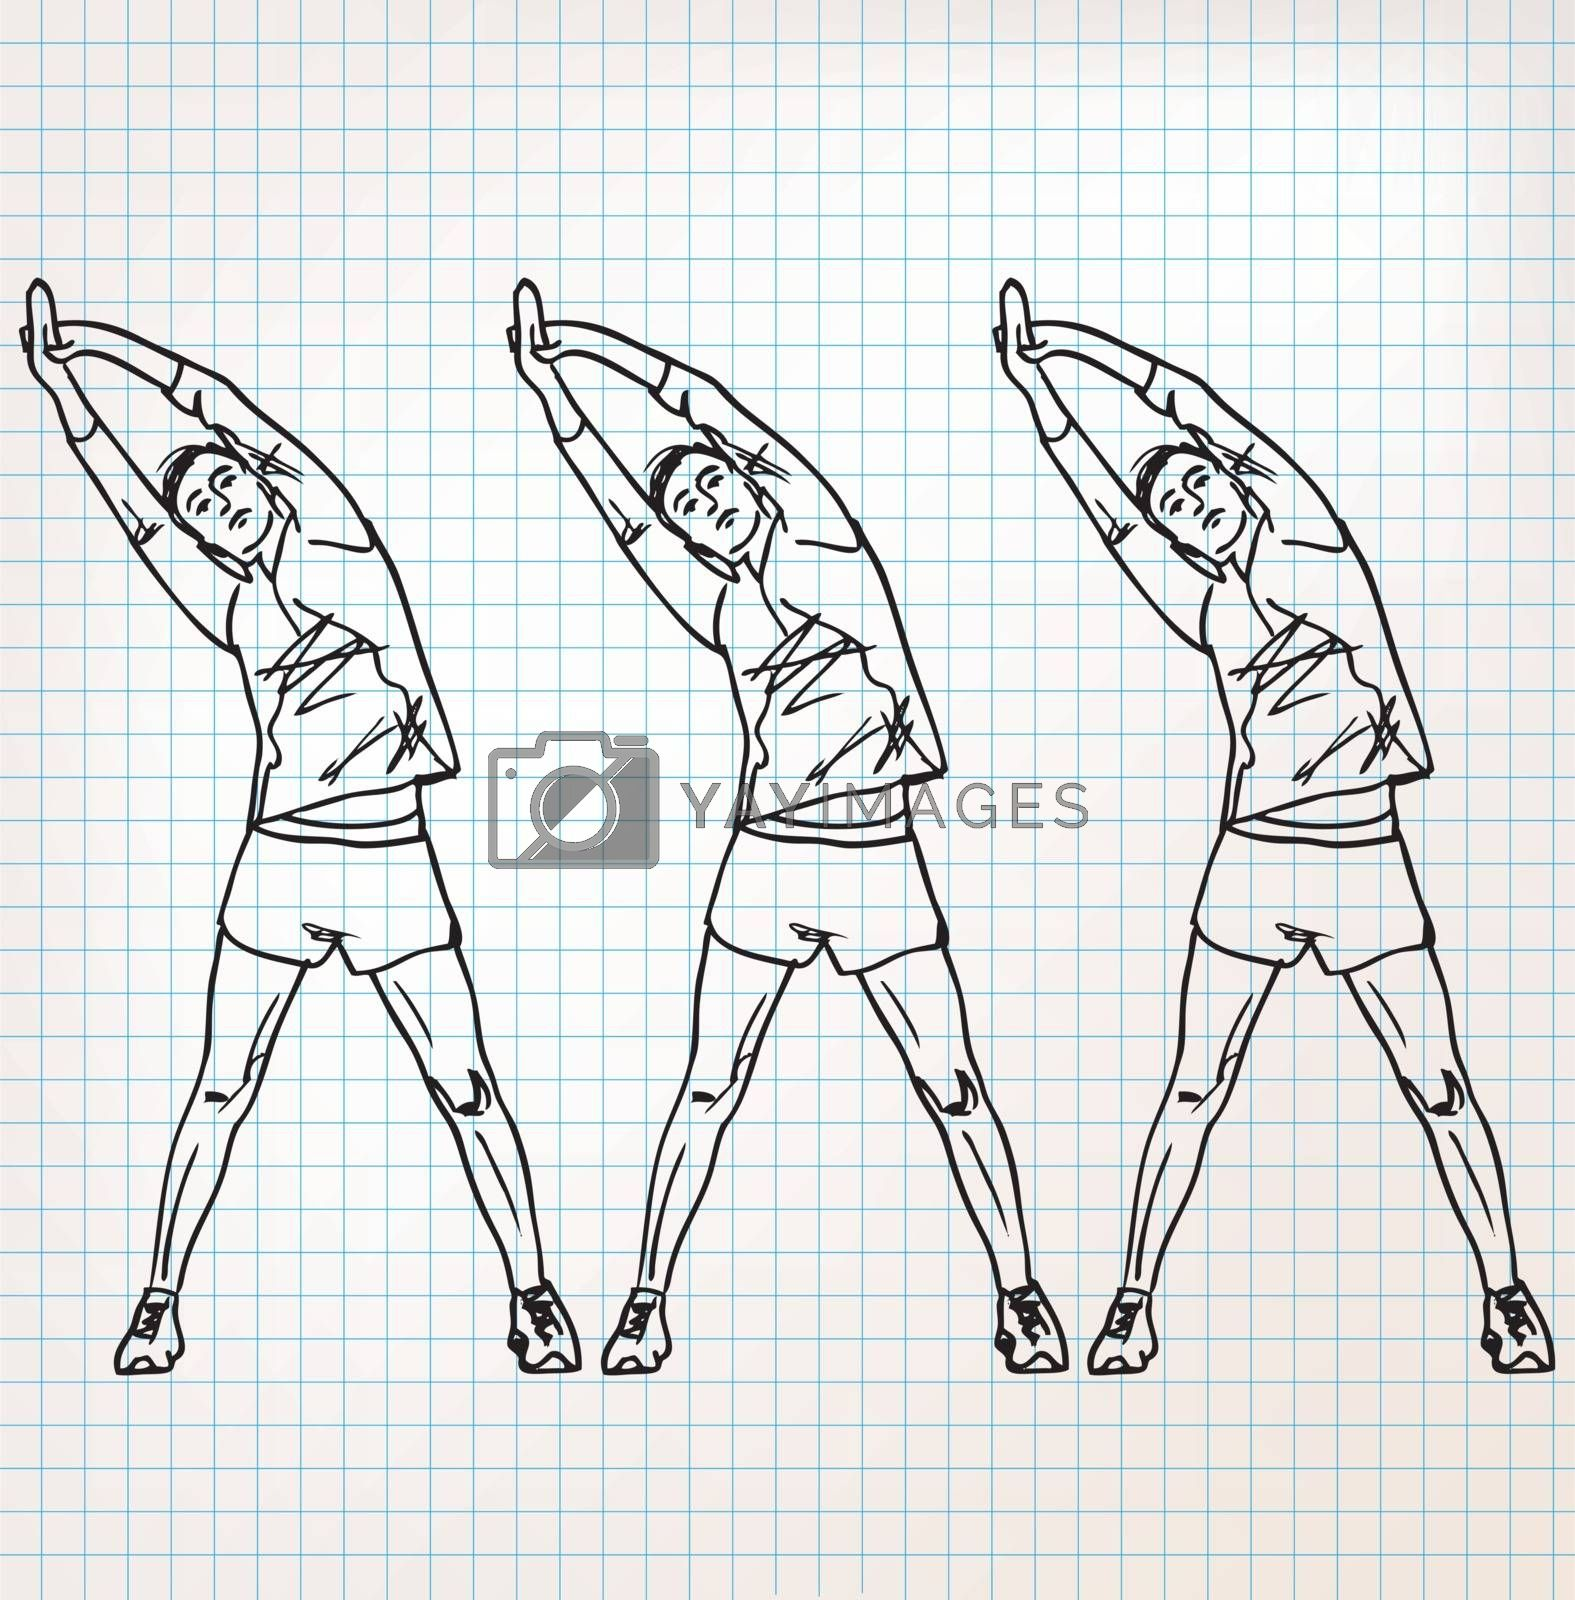 Stretching exercises sketch illustration